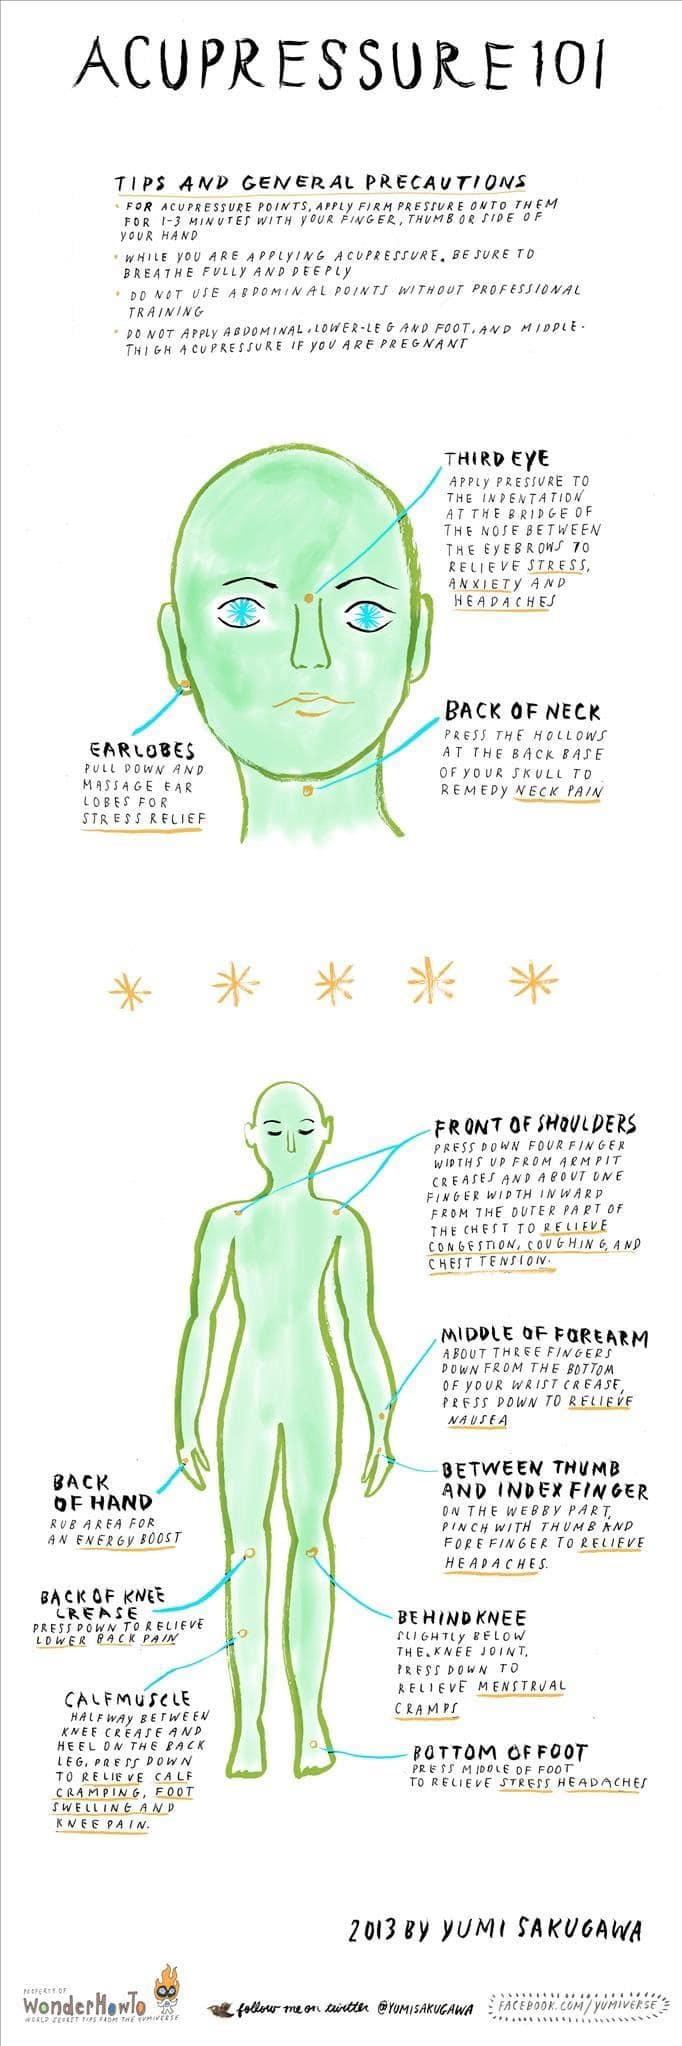 Acupressure 101: You Can Relieve Your Stress Without Leaving Your Desk